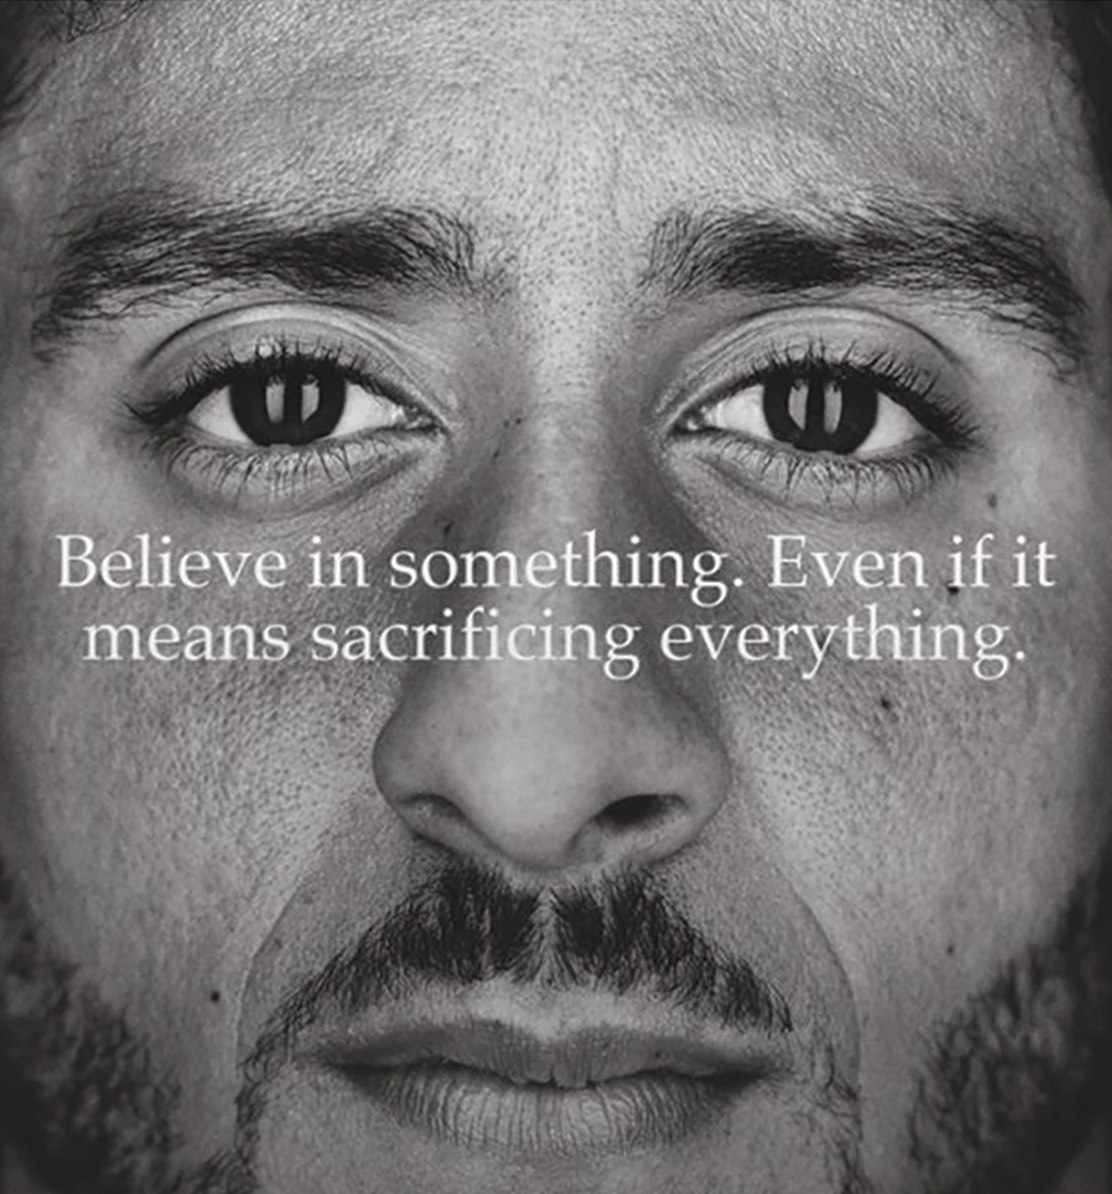 This image taken from the Twitter account of the former National Football League player Colin Kaepernick shows a Nike advertisement featuring him that was posted Monday, Sept. 3, 2018. (Twitter via AP)